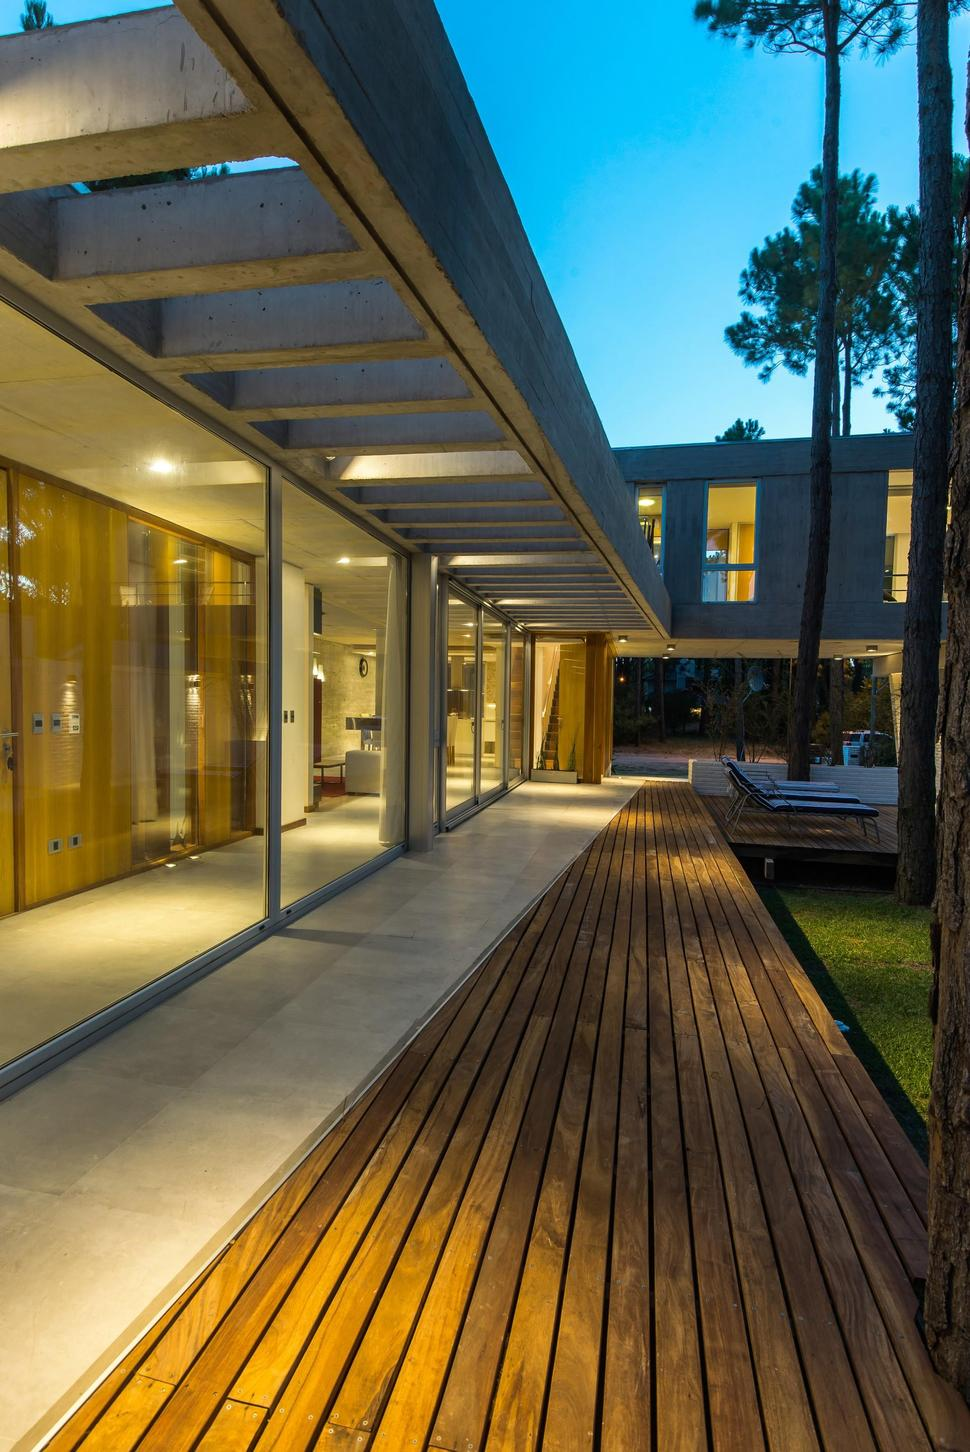 lighting in house. View In Gallery House-built-focus-day-night-lighting-23-pool- Lighting House T